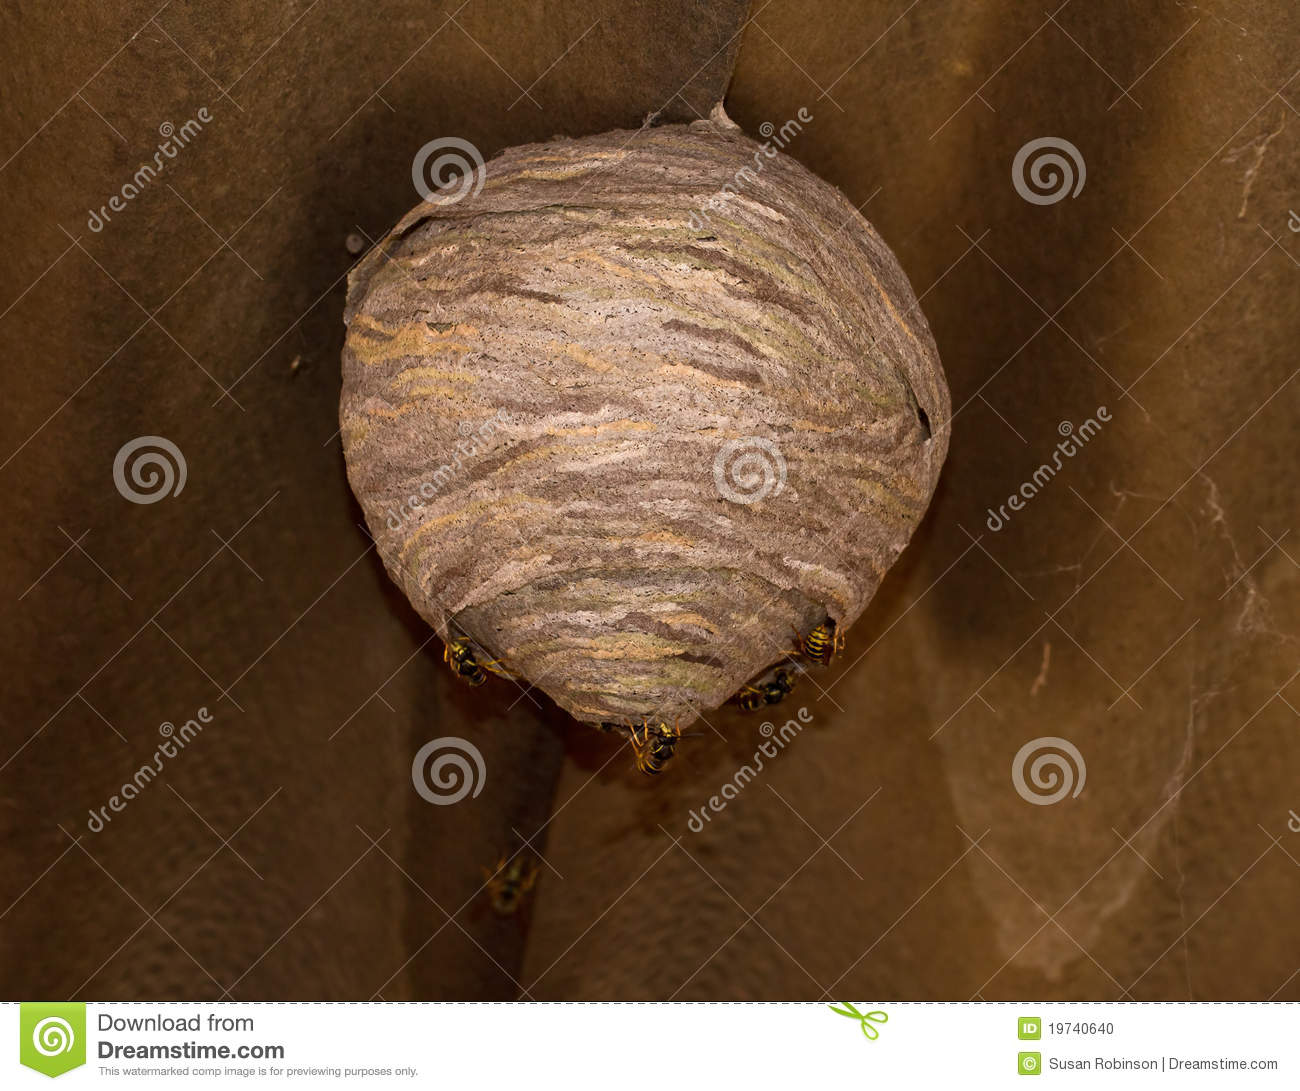 Wasp Nest Under Construction With Wasps Adding Chewed Saliva Soaked